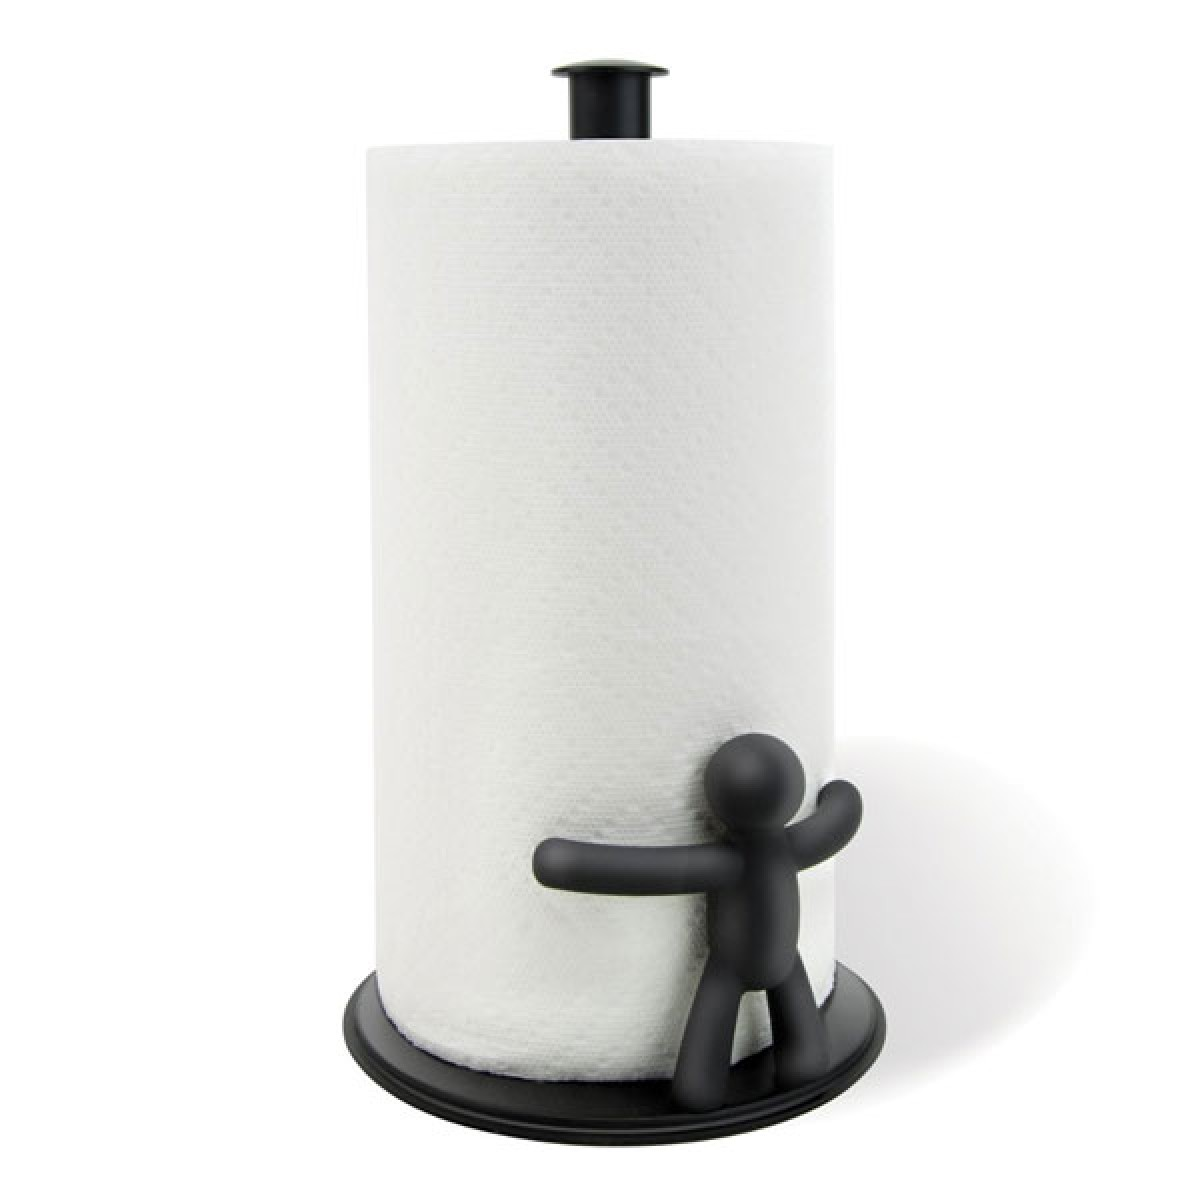 Umbra Buddy Paper Towel Holder - Red Candy